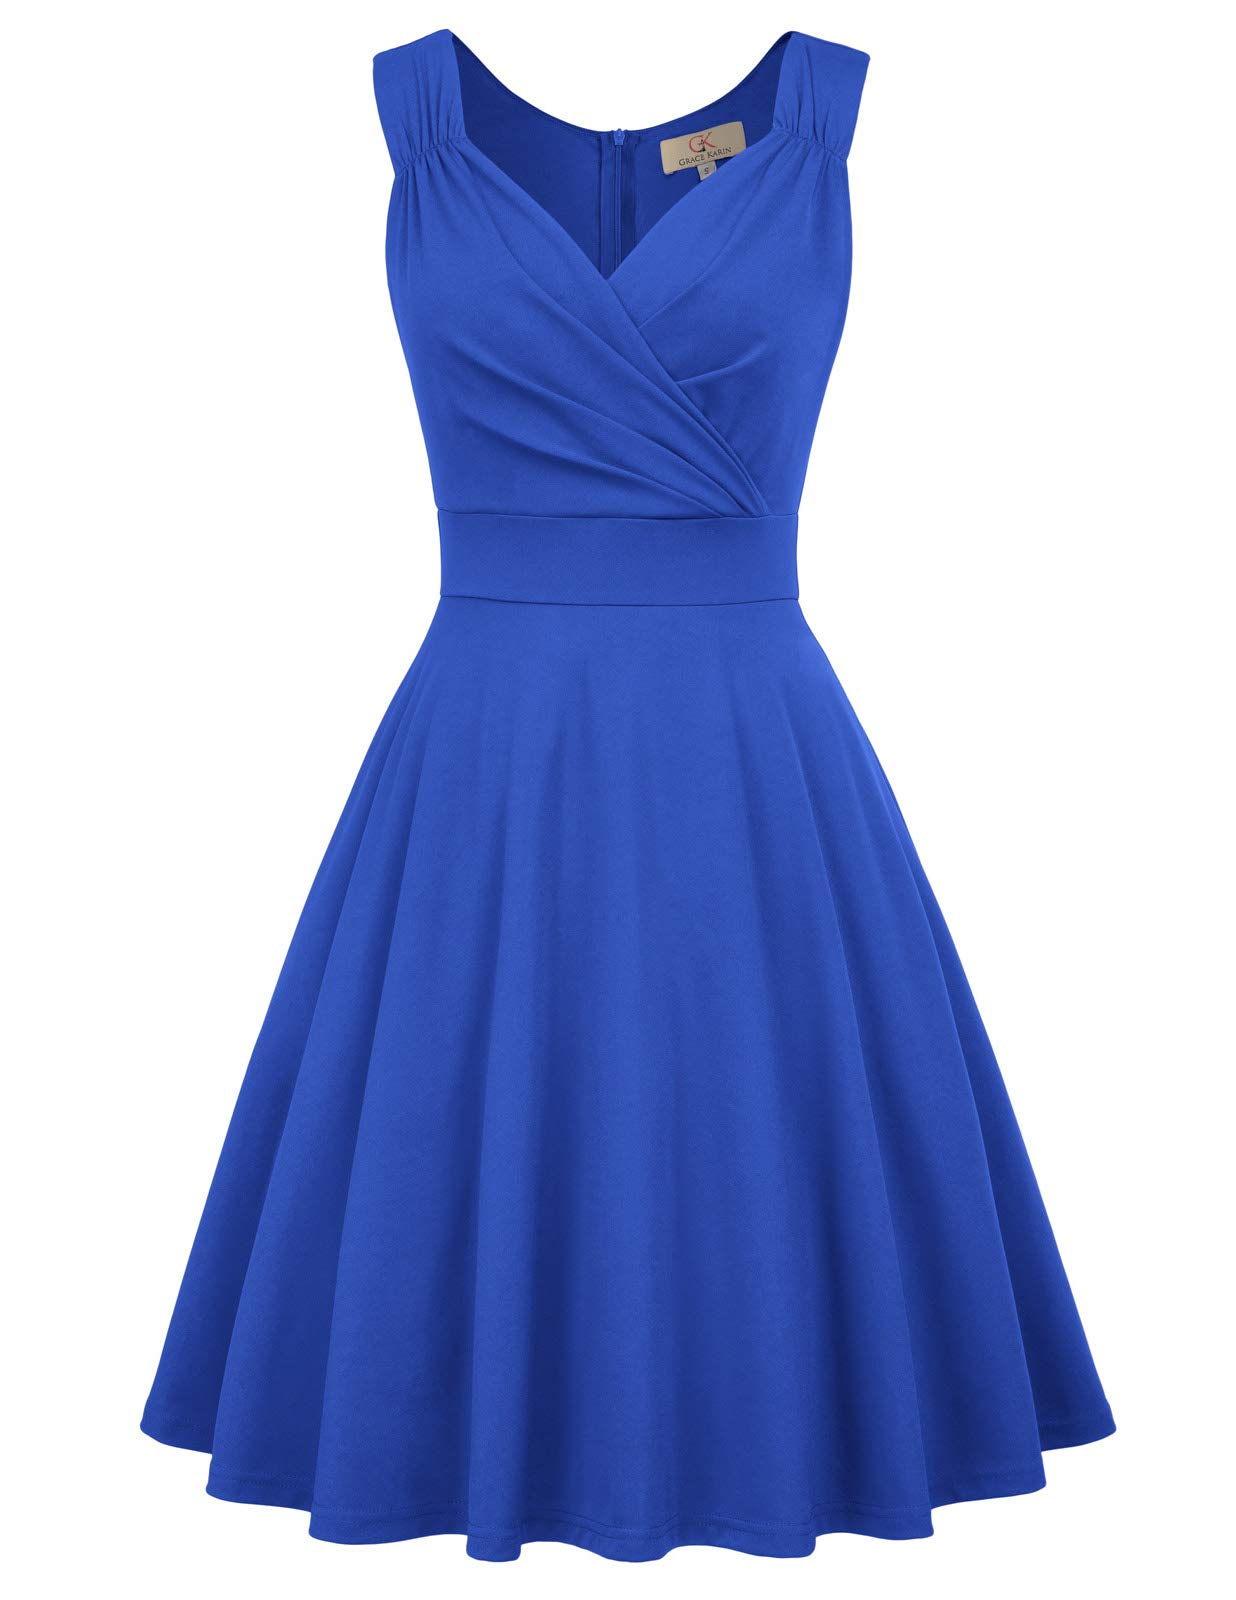 Available at Amazon: GRACE KARIN Women's 50s 60s Vintage Sleeveless V-Neck Cocktail Swing Dress